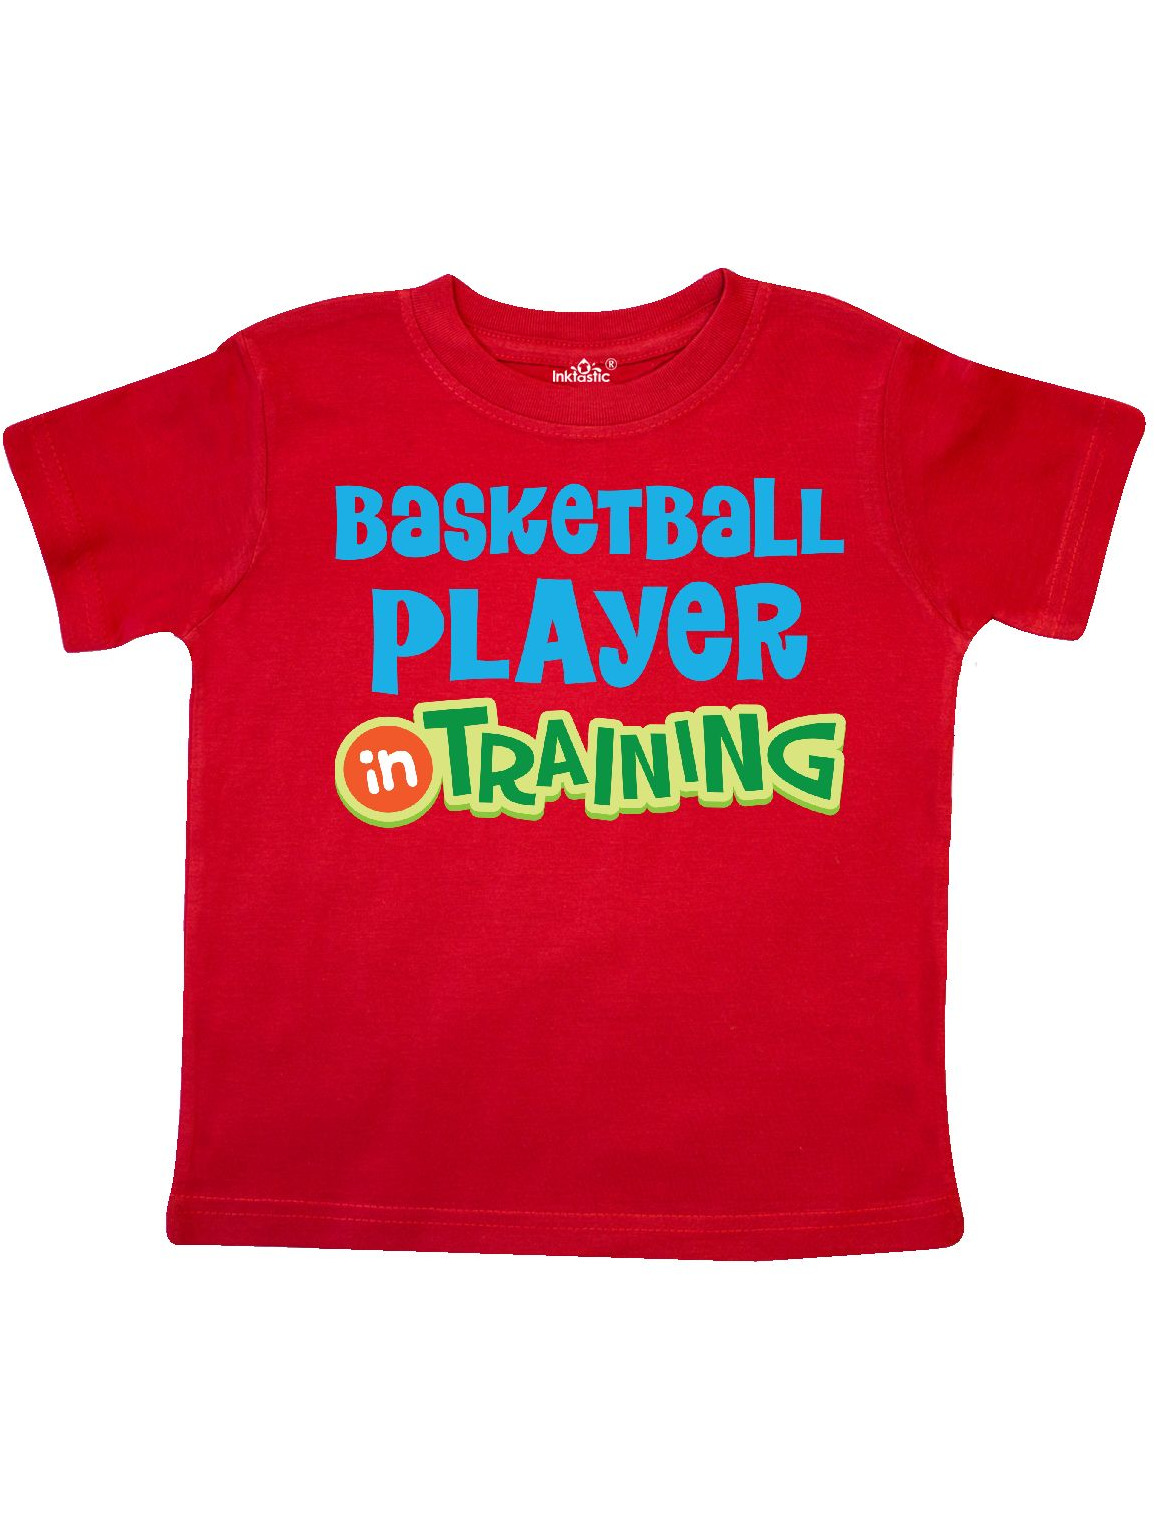 Future Basketball Player In Training Toddler T-Shirt